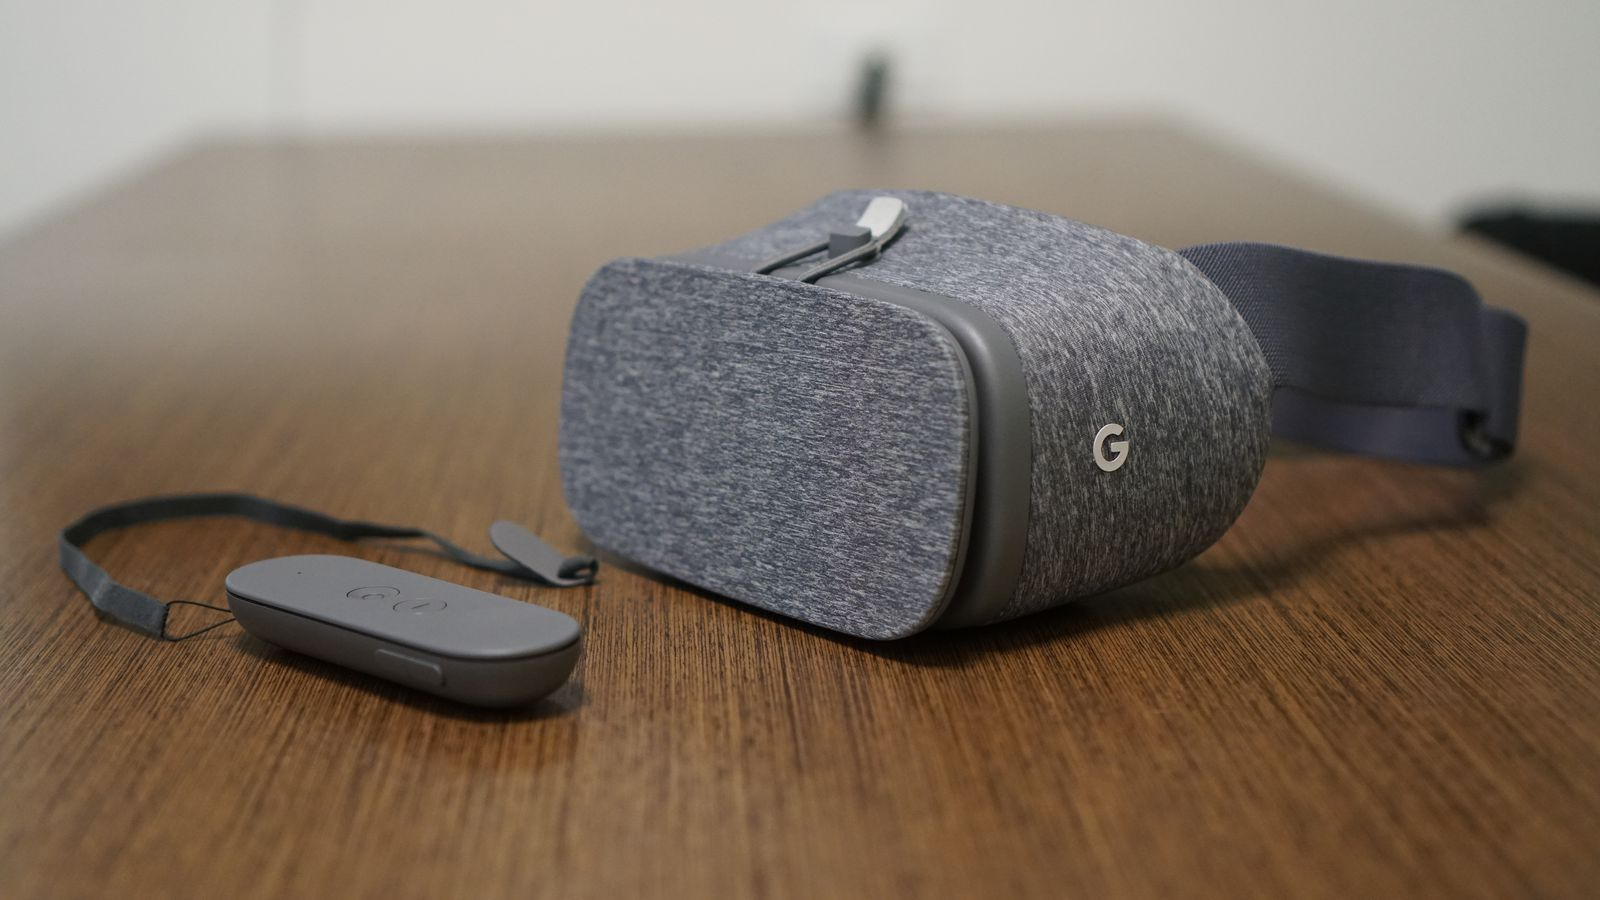 A week with Google's Daydream, why Facebook should be nervous